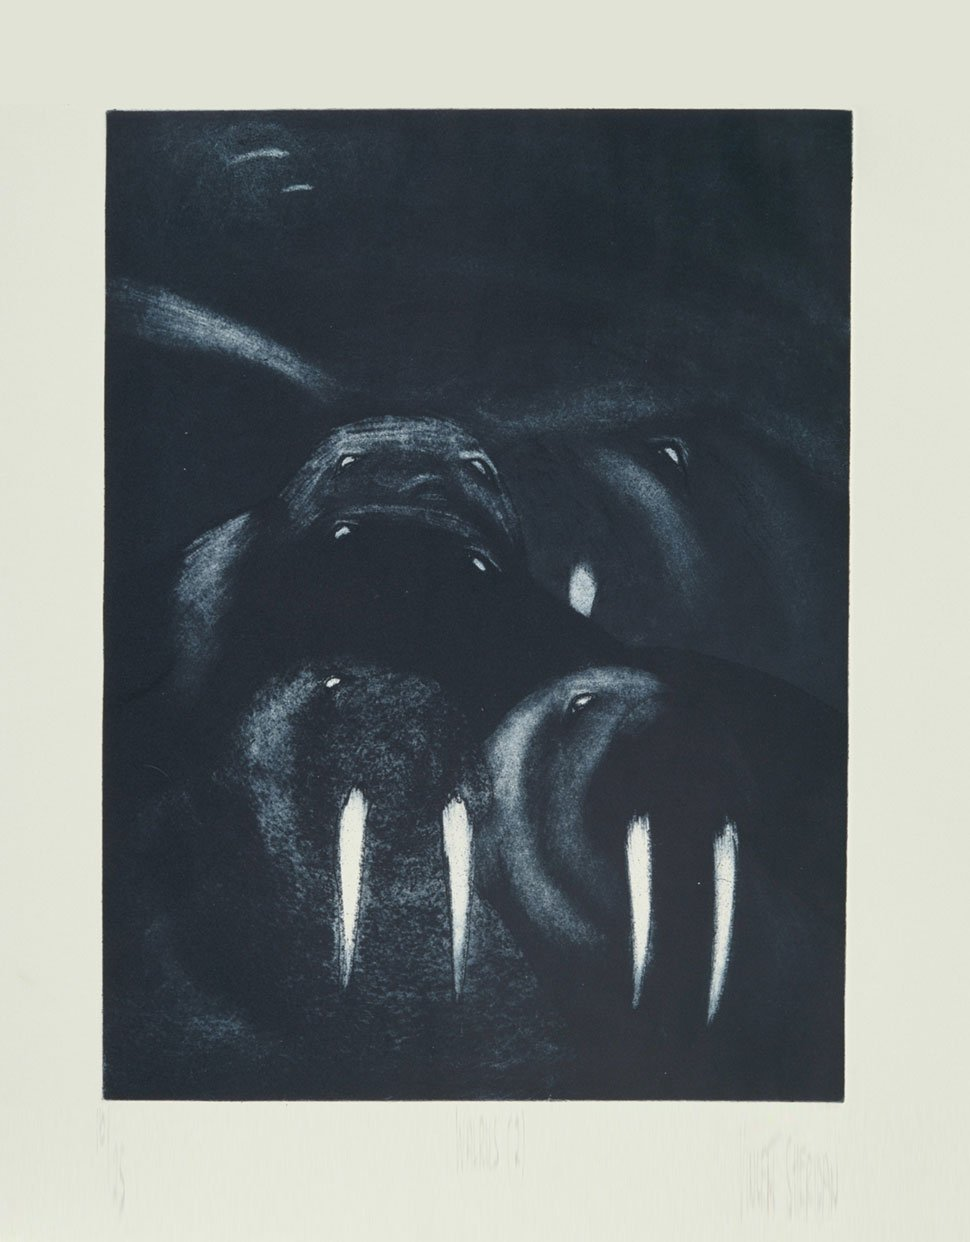 Walrus 2 etching by Vincent Sheiridan 1980s